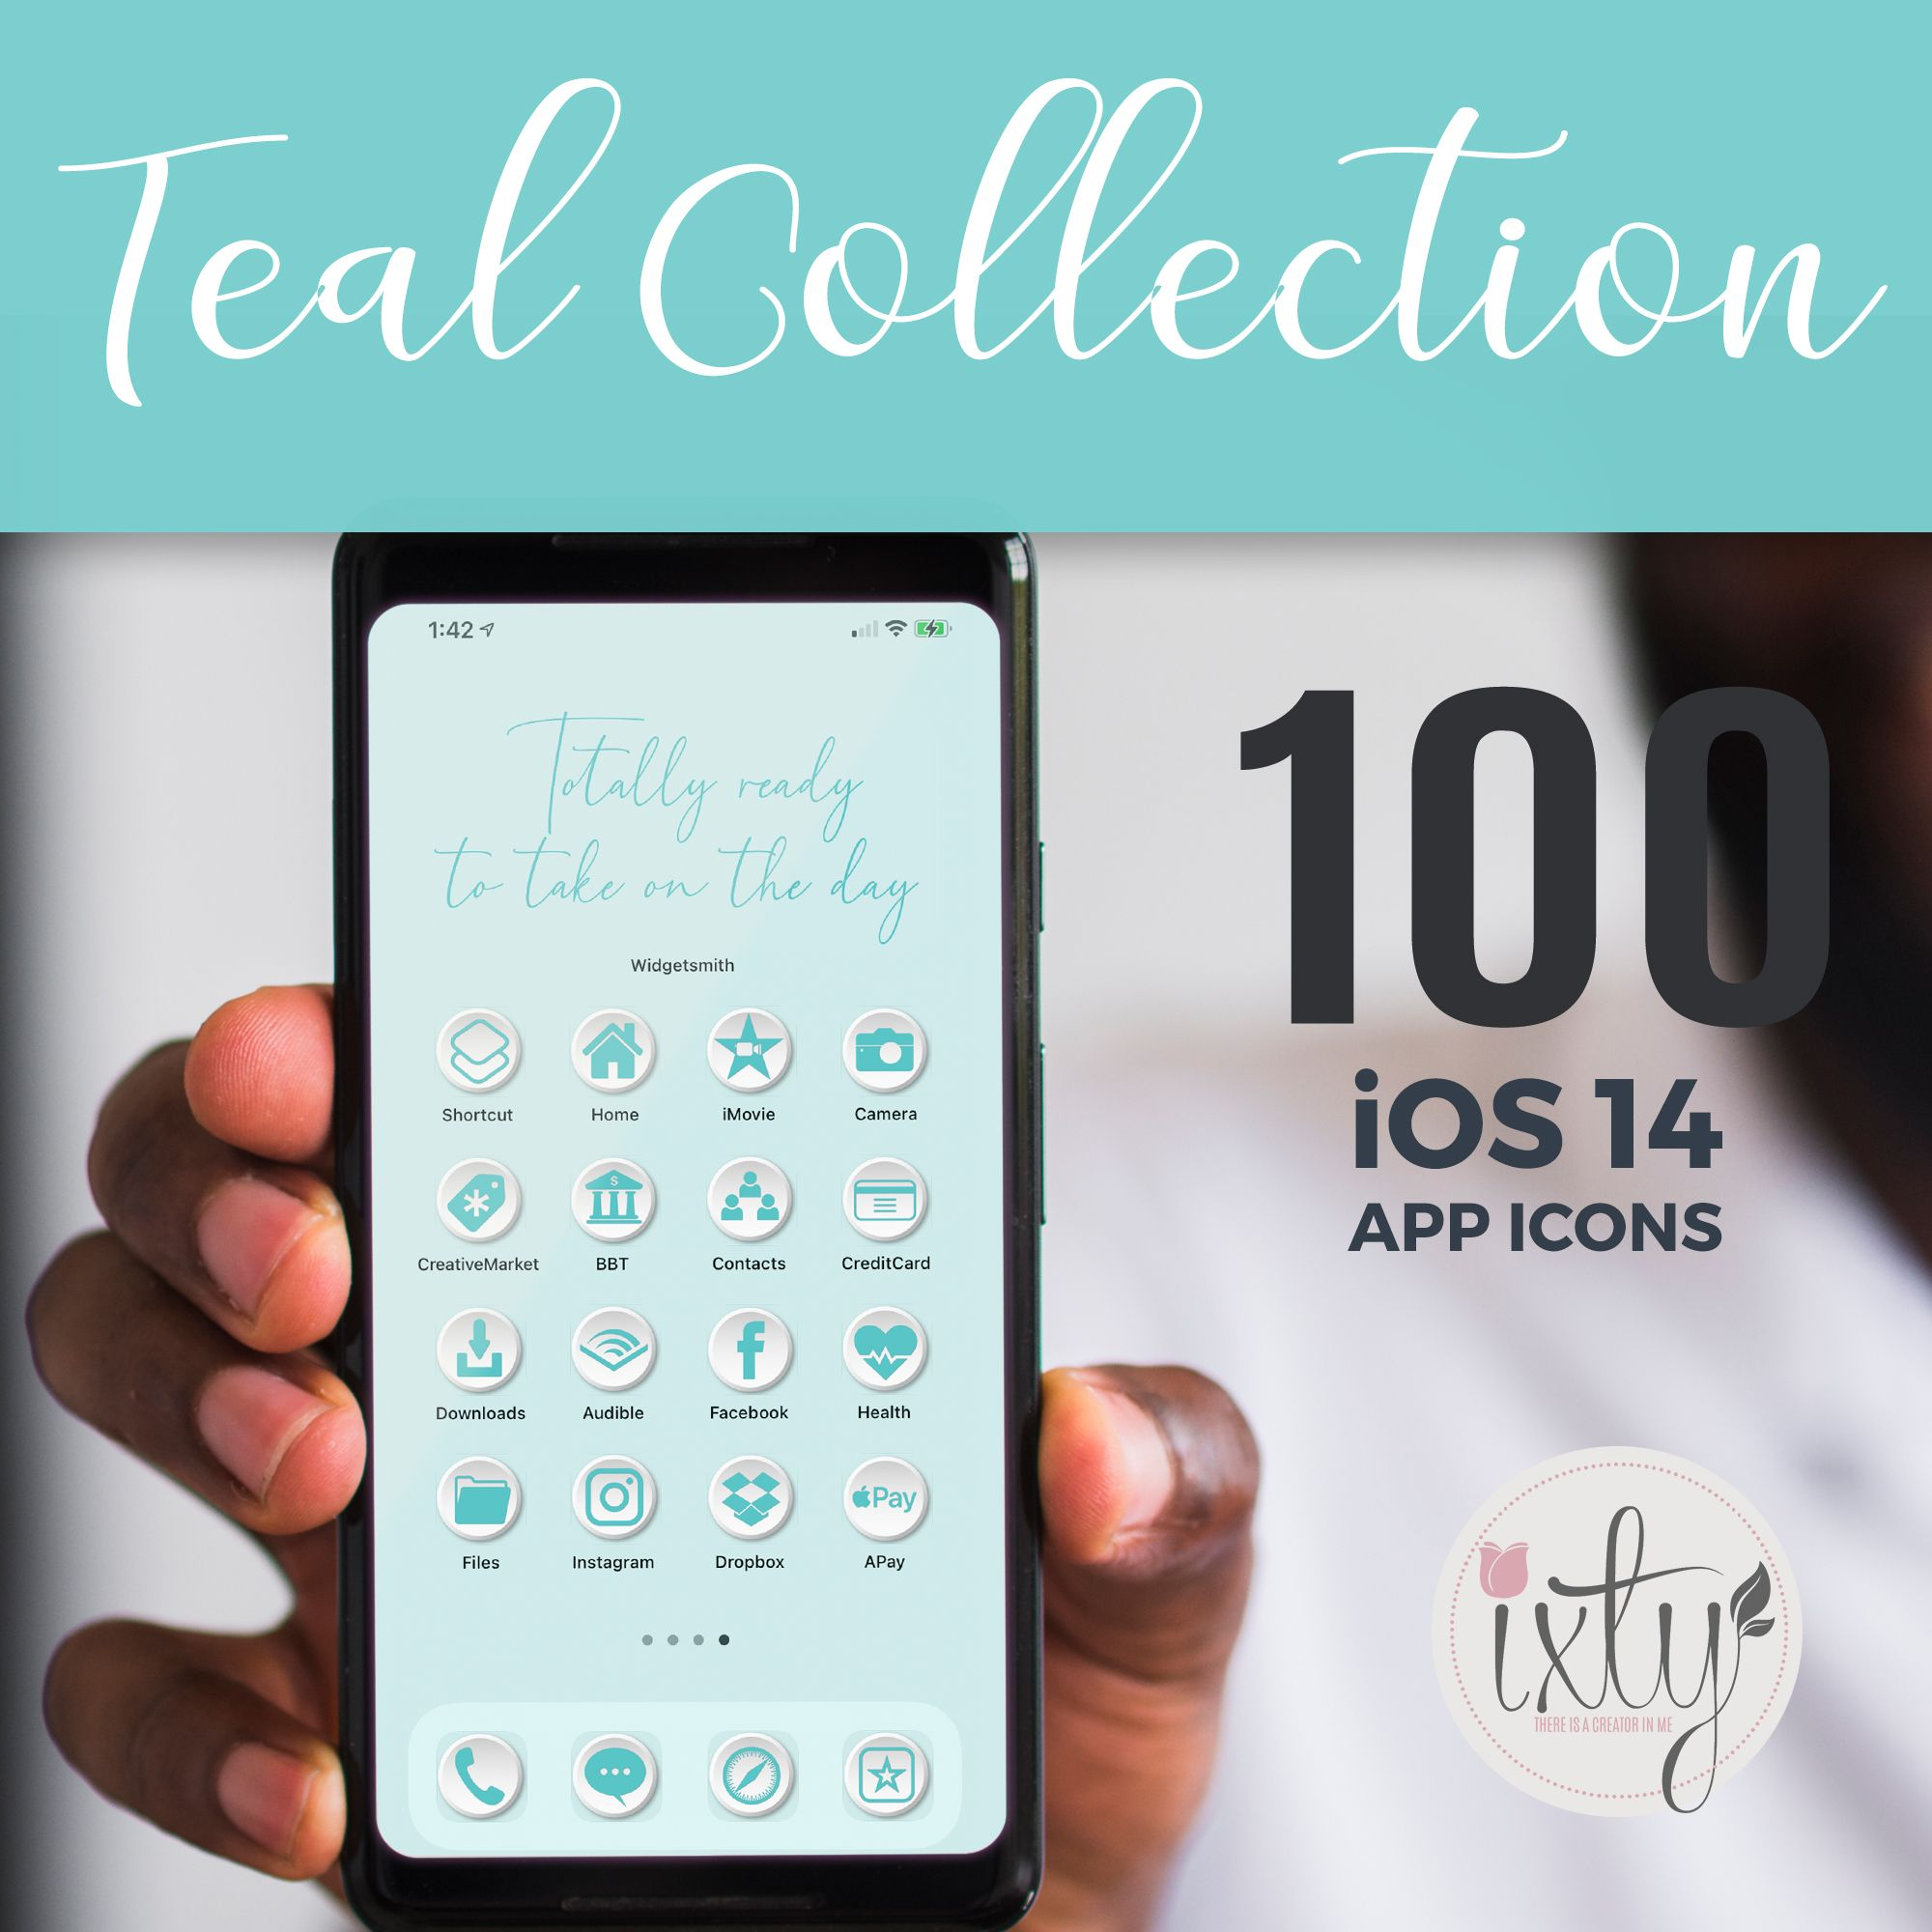 Teal Ios14 App Icons Iphone Icon Homescreen Icons Etsy In 2020 App Covers Iphone Apps Cover App